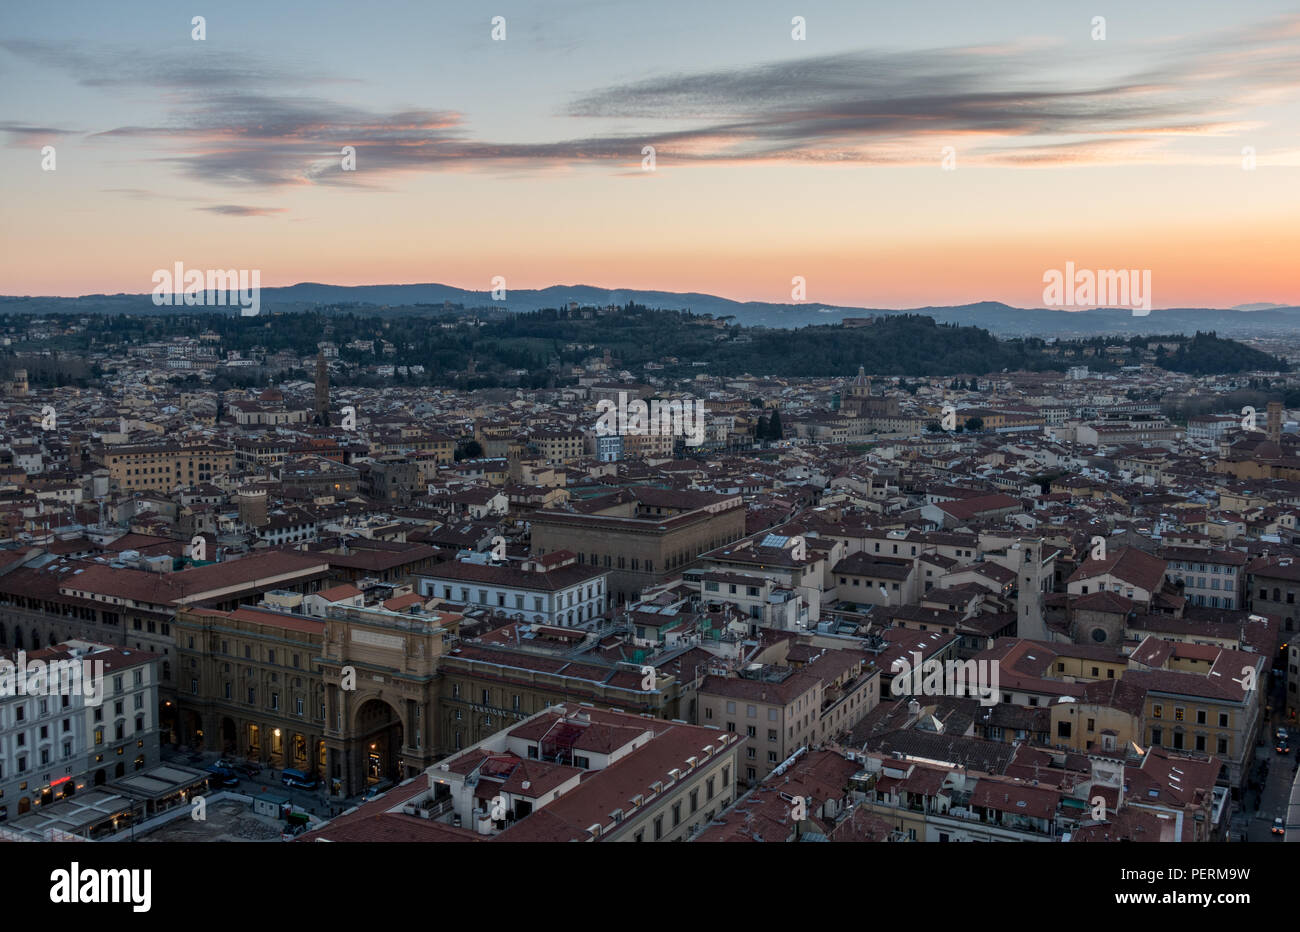 Florence, Italy - March 23, 2018: Evening illuminates the rooftops of Florence city, with the villa-topped hills of Bellosguardo rising behind. - Stock Image